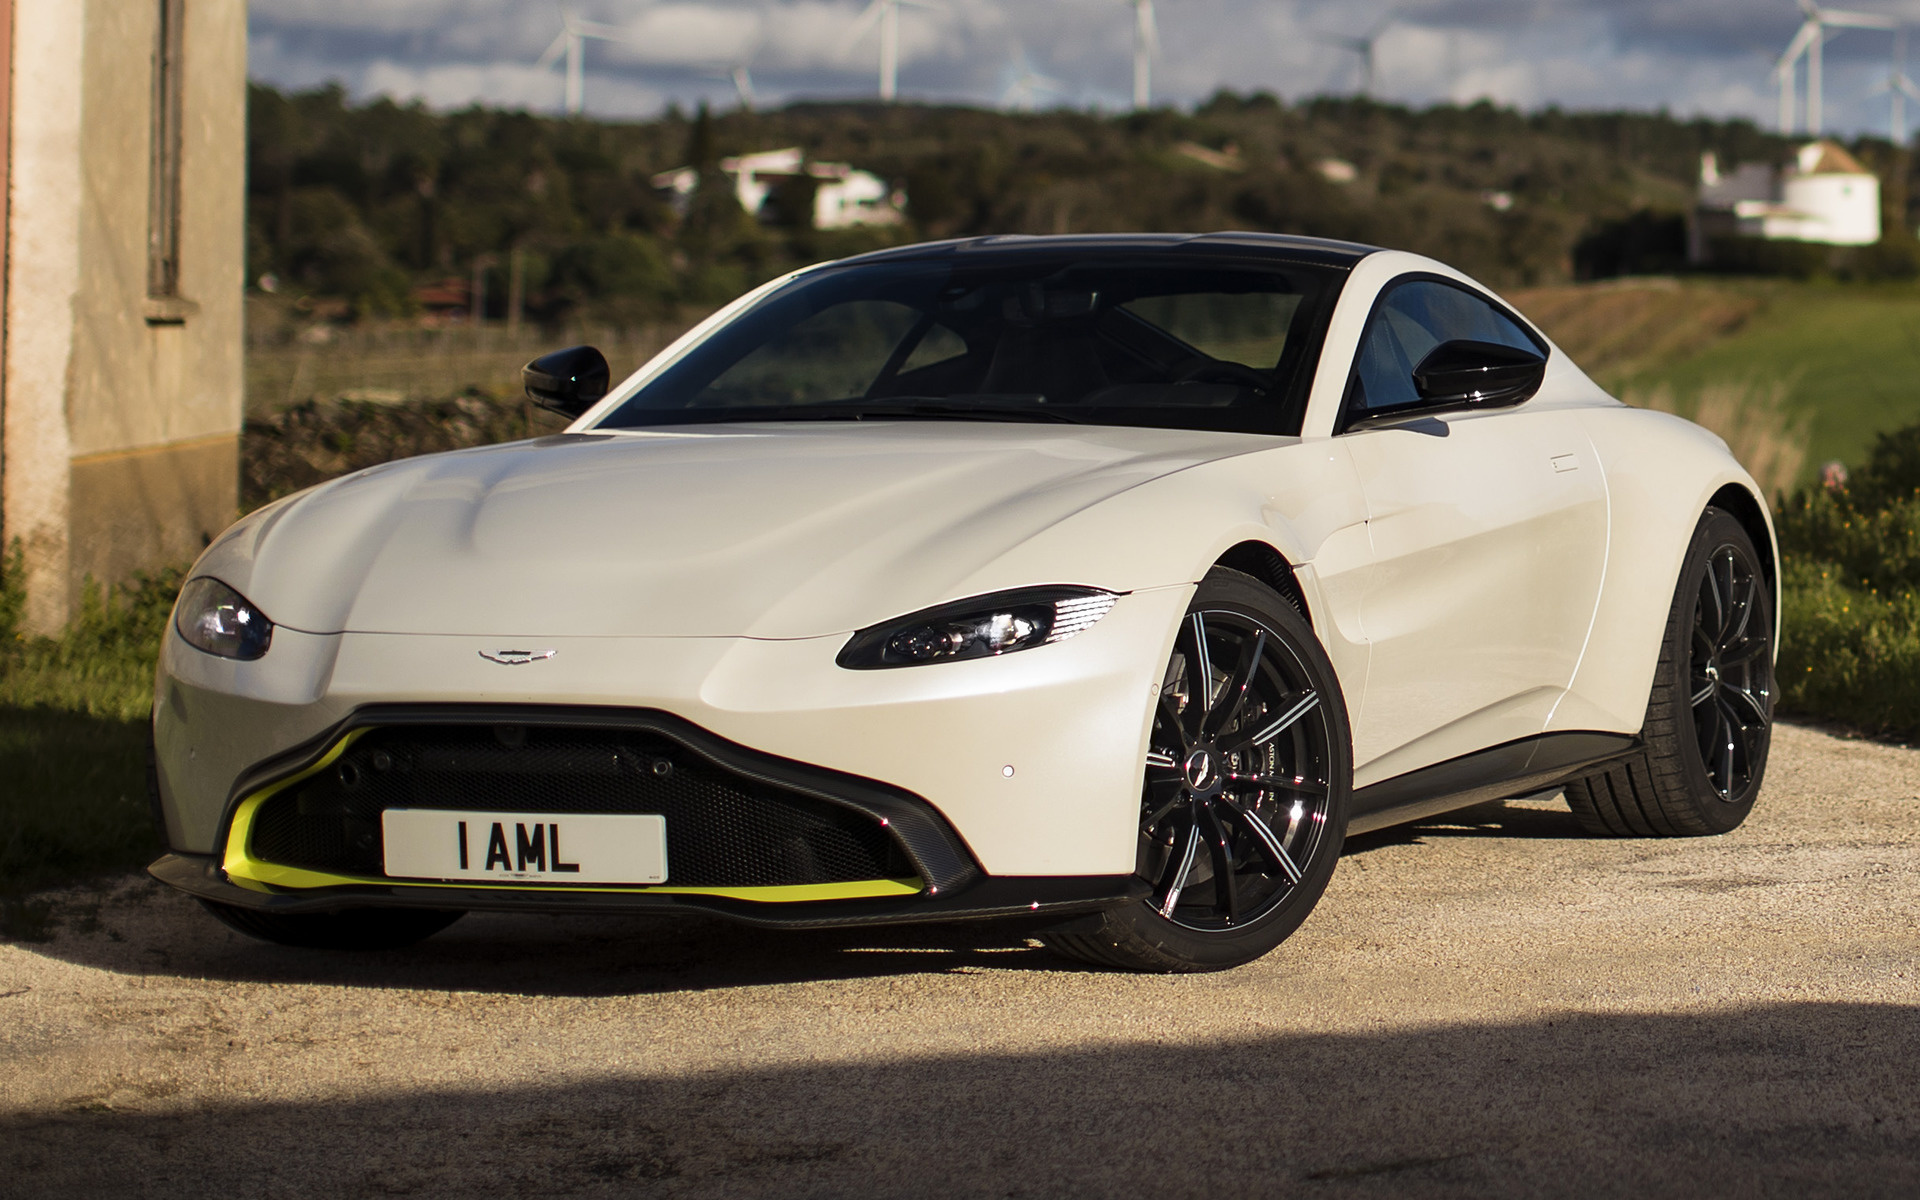 Aston Martin Vantage Wallpapers And HD Images Car Pixel - Aston martin vantage 2018